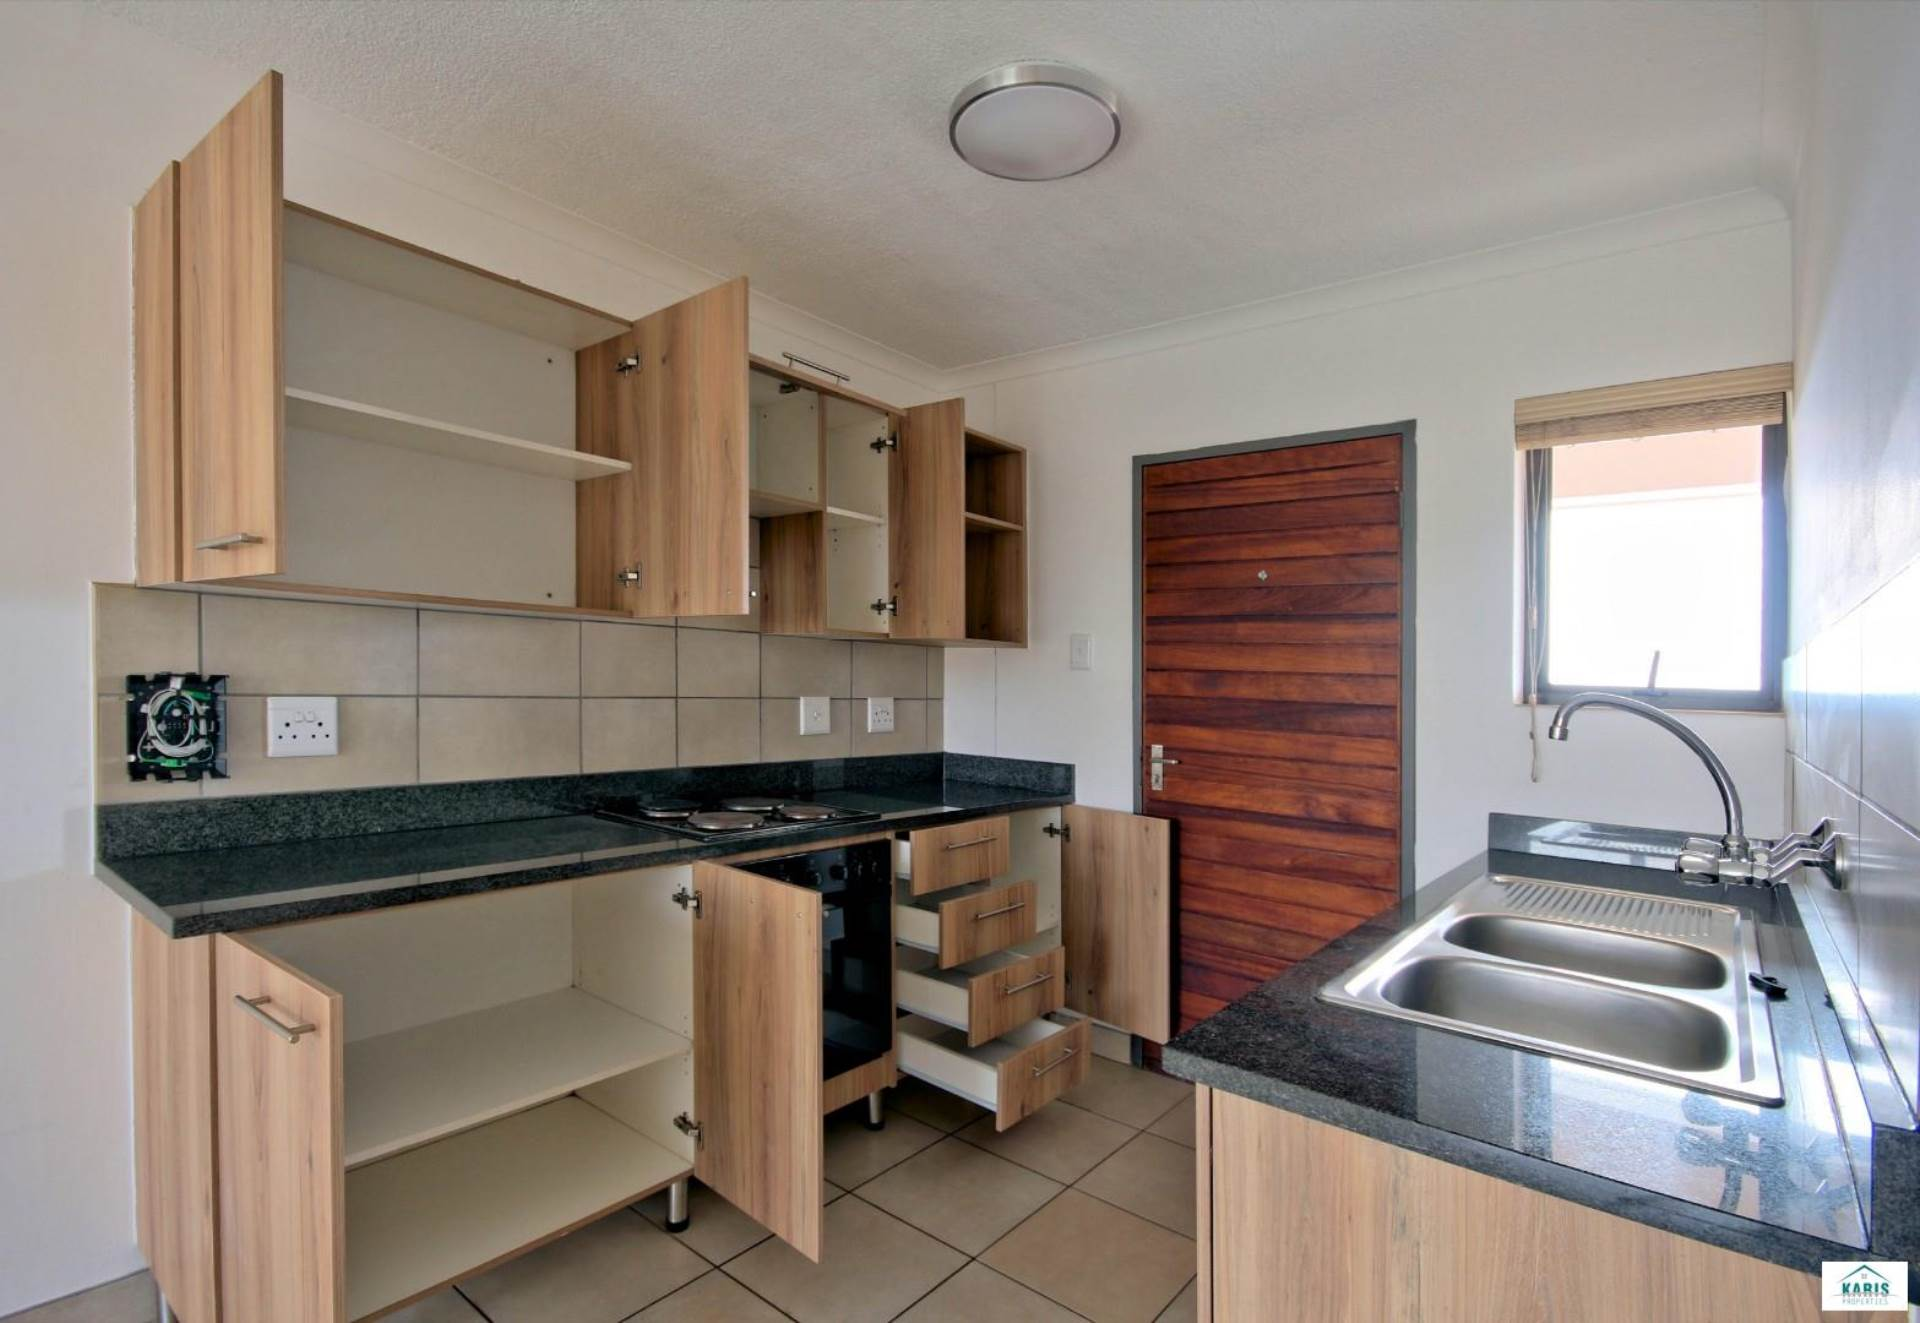 Apartment To Rent In Centurion Central Centurion Gauteng For R